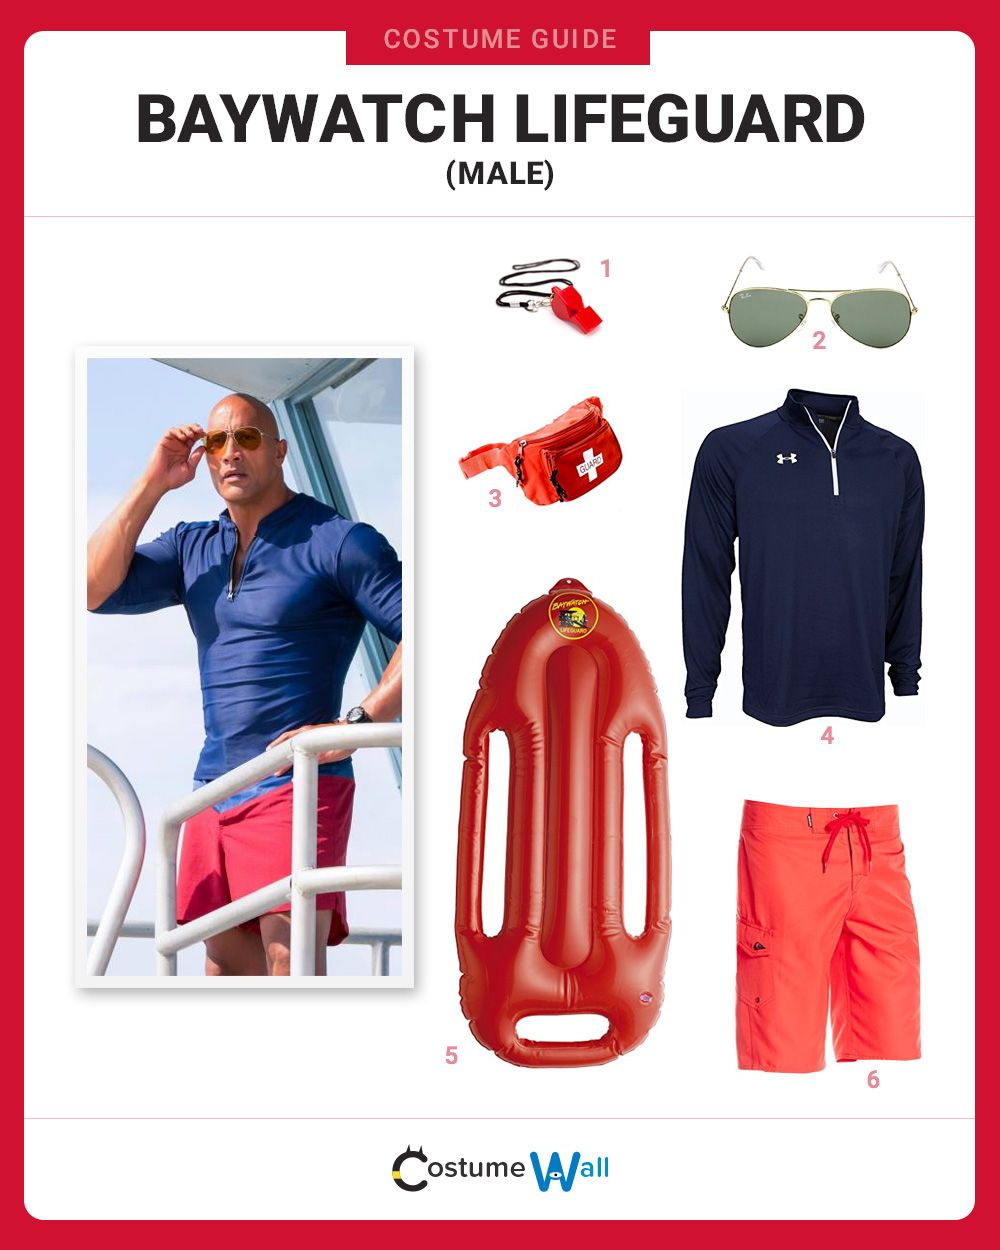 937762d9714 The best costume guide for dressing up to hit the beach like the Male Baywatch  Lifeguard from the hit TV show and movie